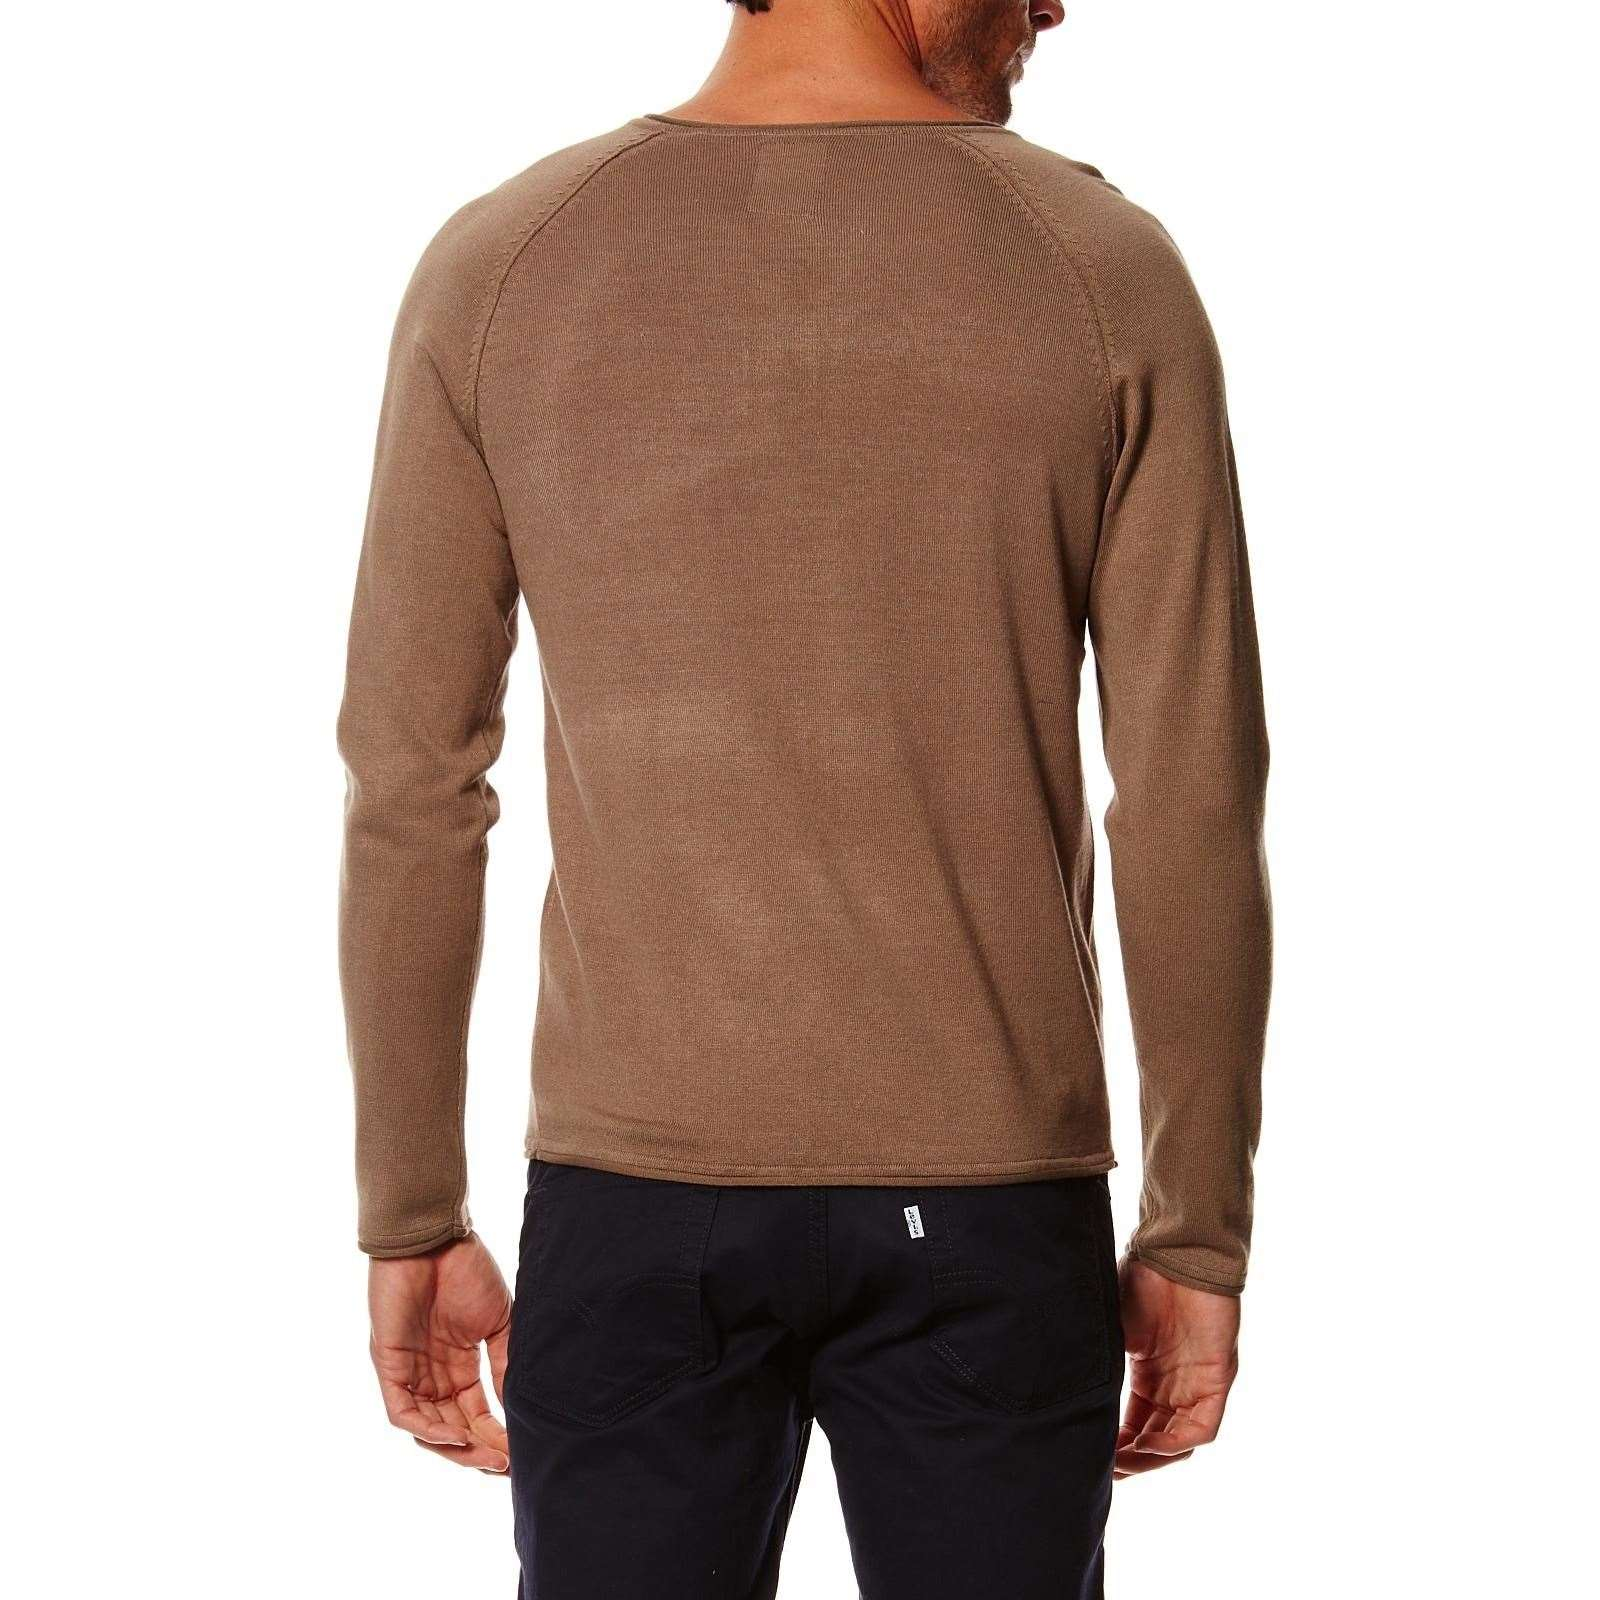 26 Rms PullTaupe V Homme V Homme PullTaupe 26 Rms Homme 26 Rms PullTaupe 9IE2DWHY